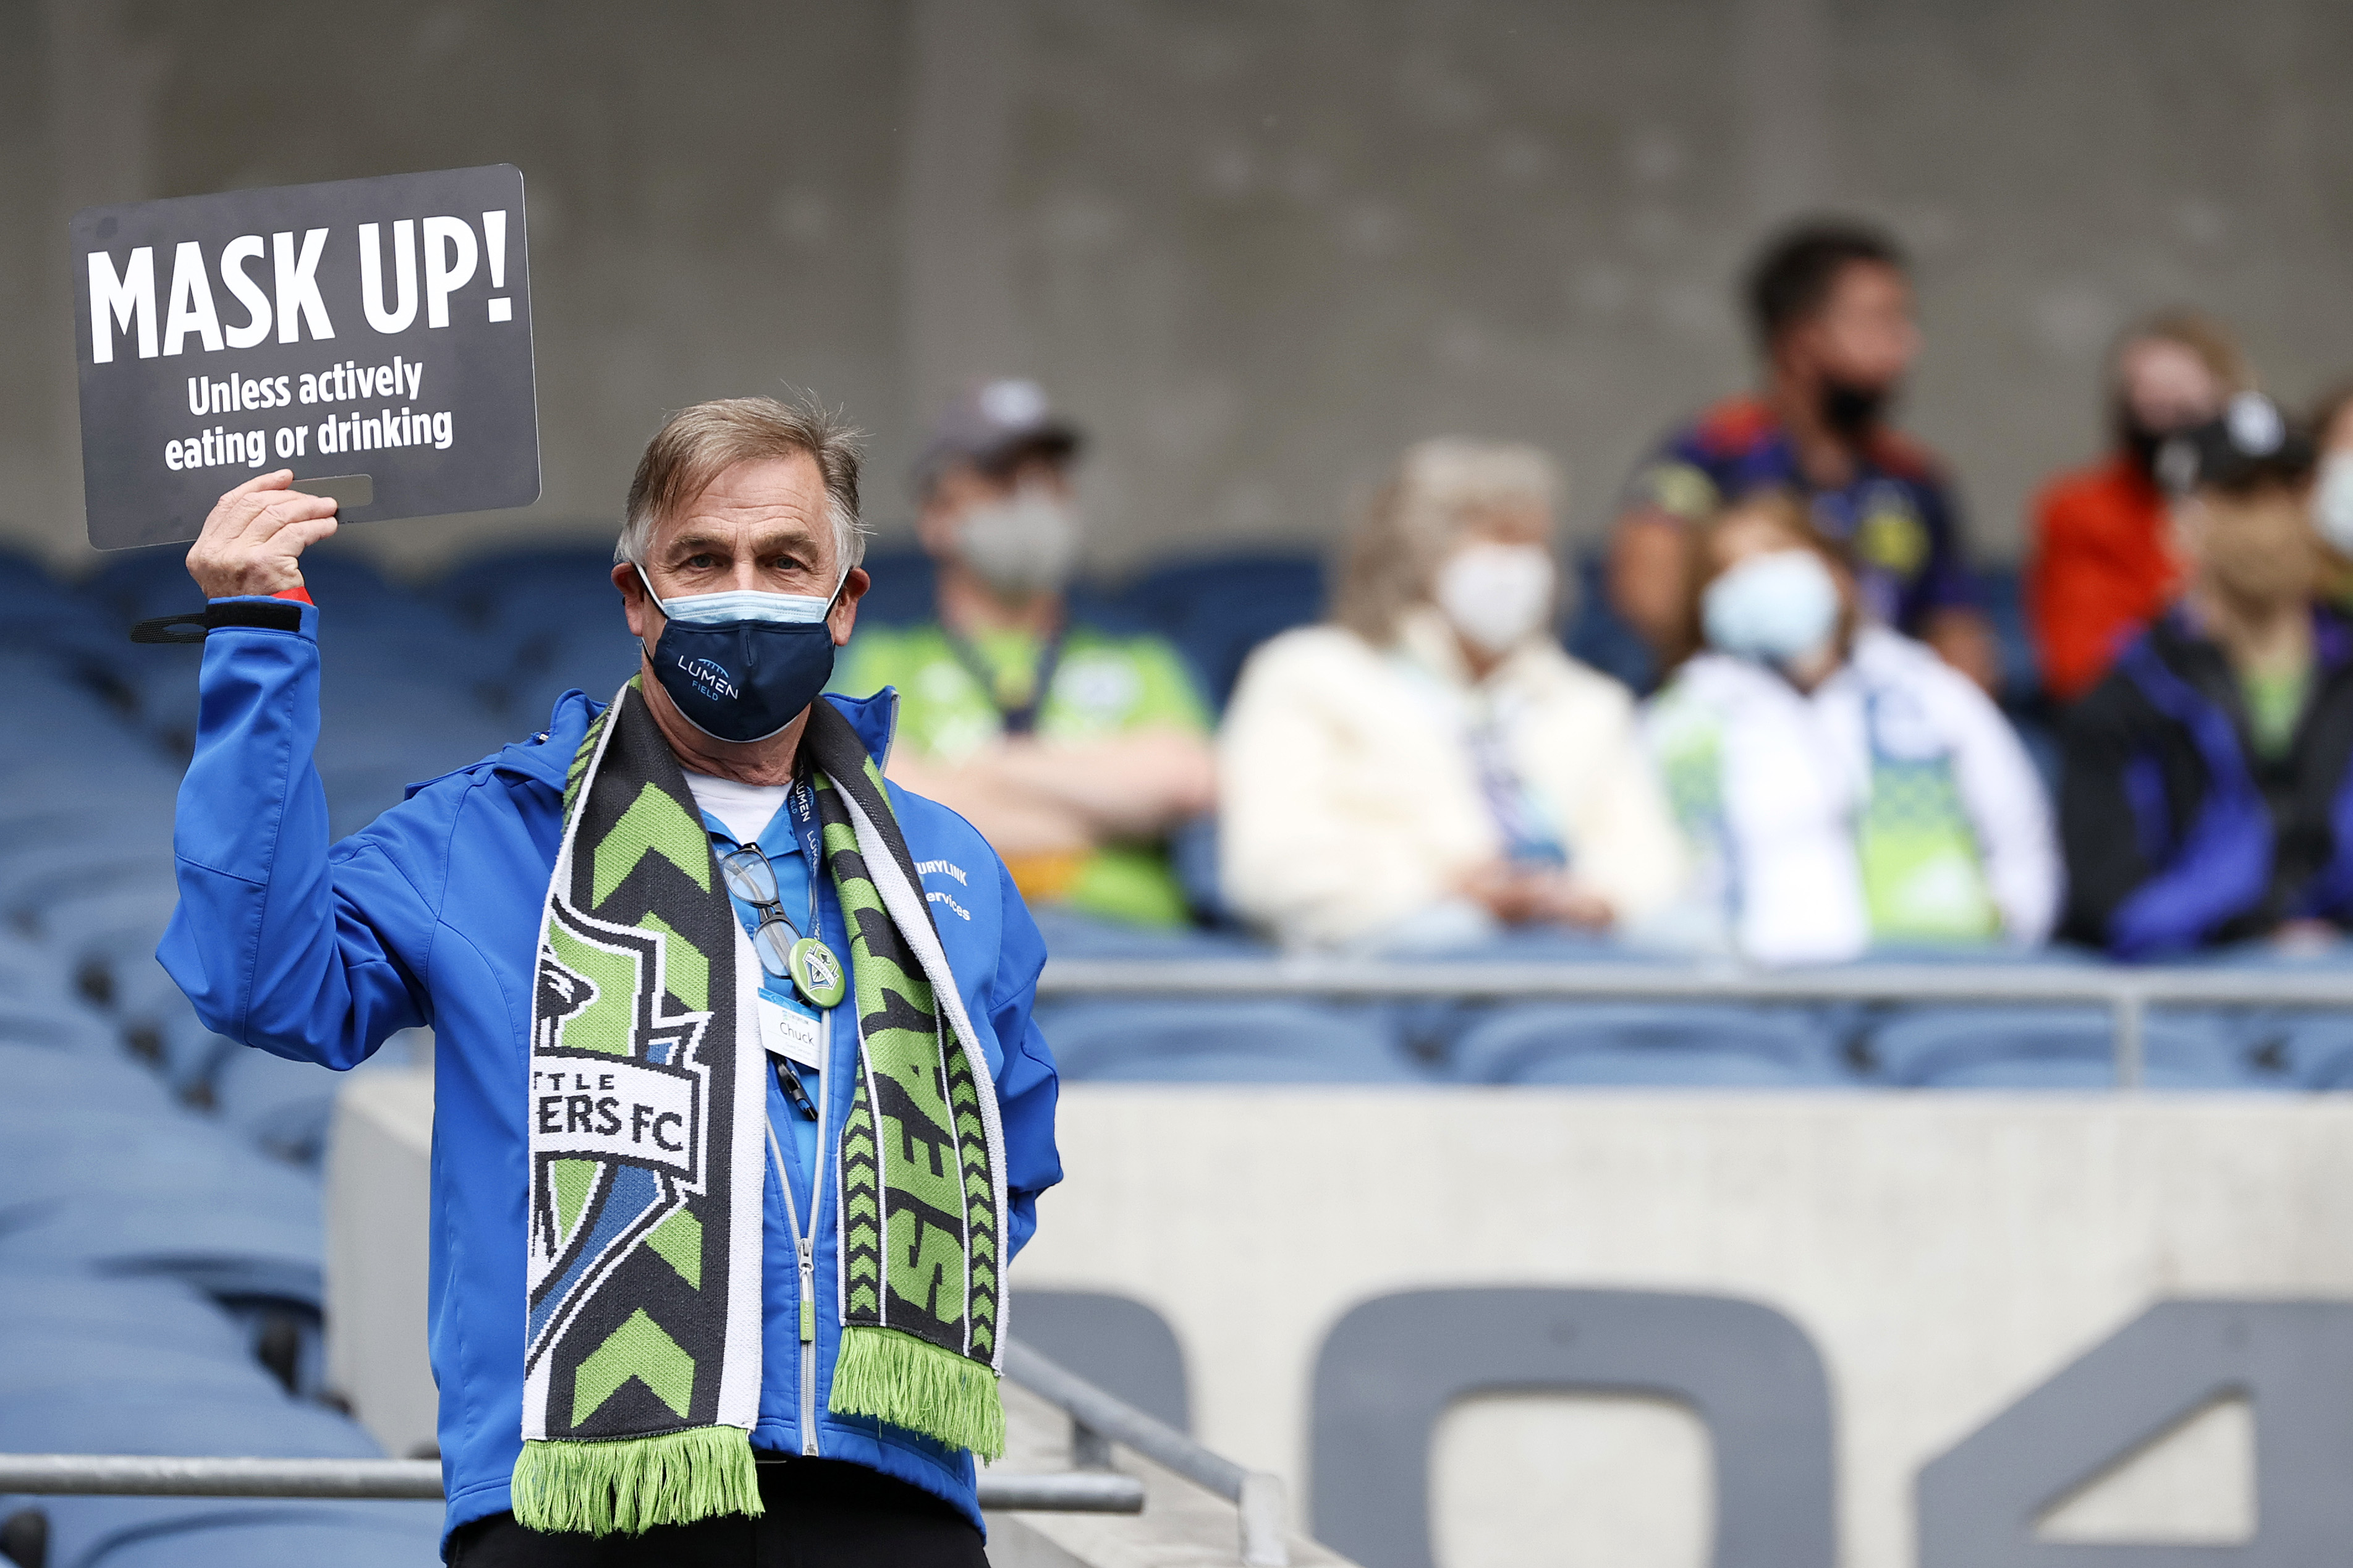 """A man wearing a mask and a Seattle Sounders scarf holds up a sign that says """"Mask up! Unless actively eating or drinking,"""" with several fans in the stands in the background, also wearing masks."""